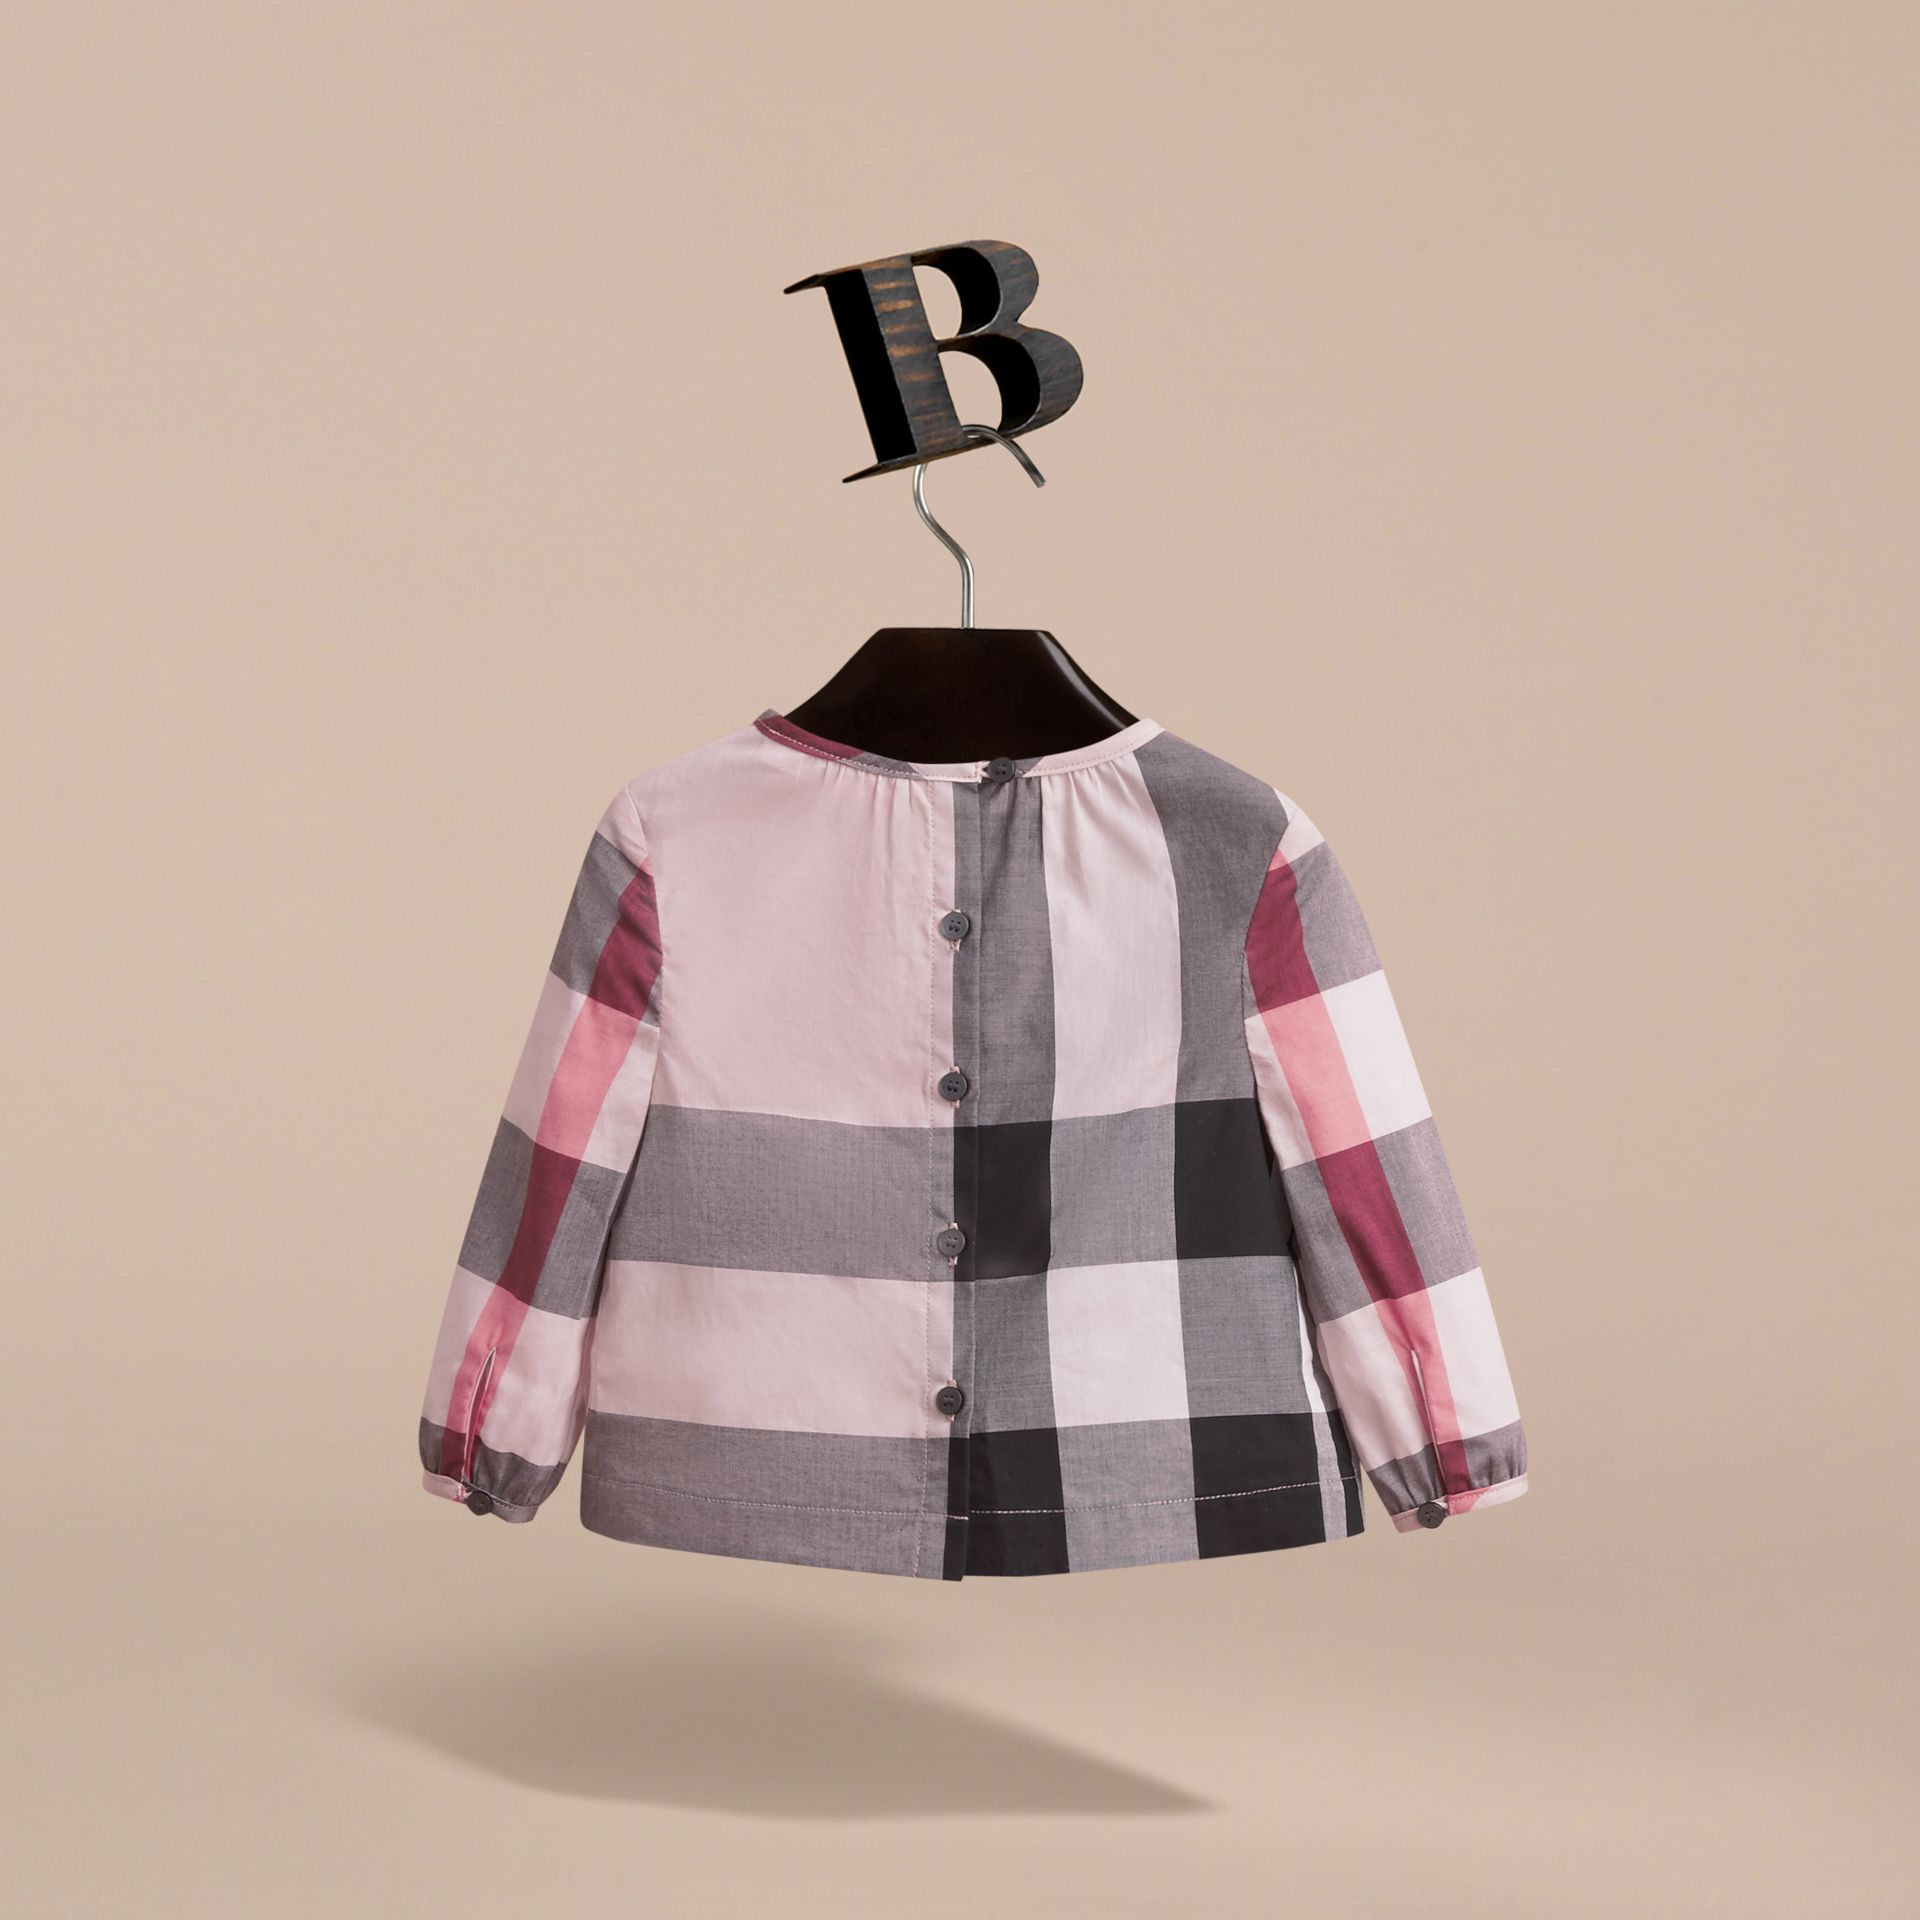 Ruffle Detail Check Cotton Top in Vintage Pink | Burberry Canada - gallery image 4